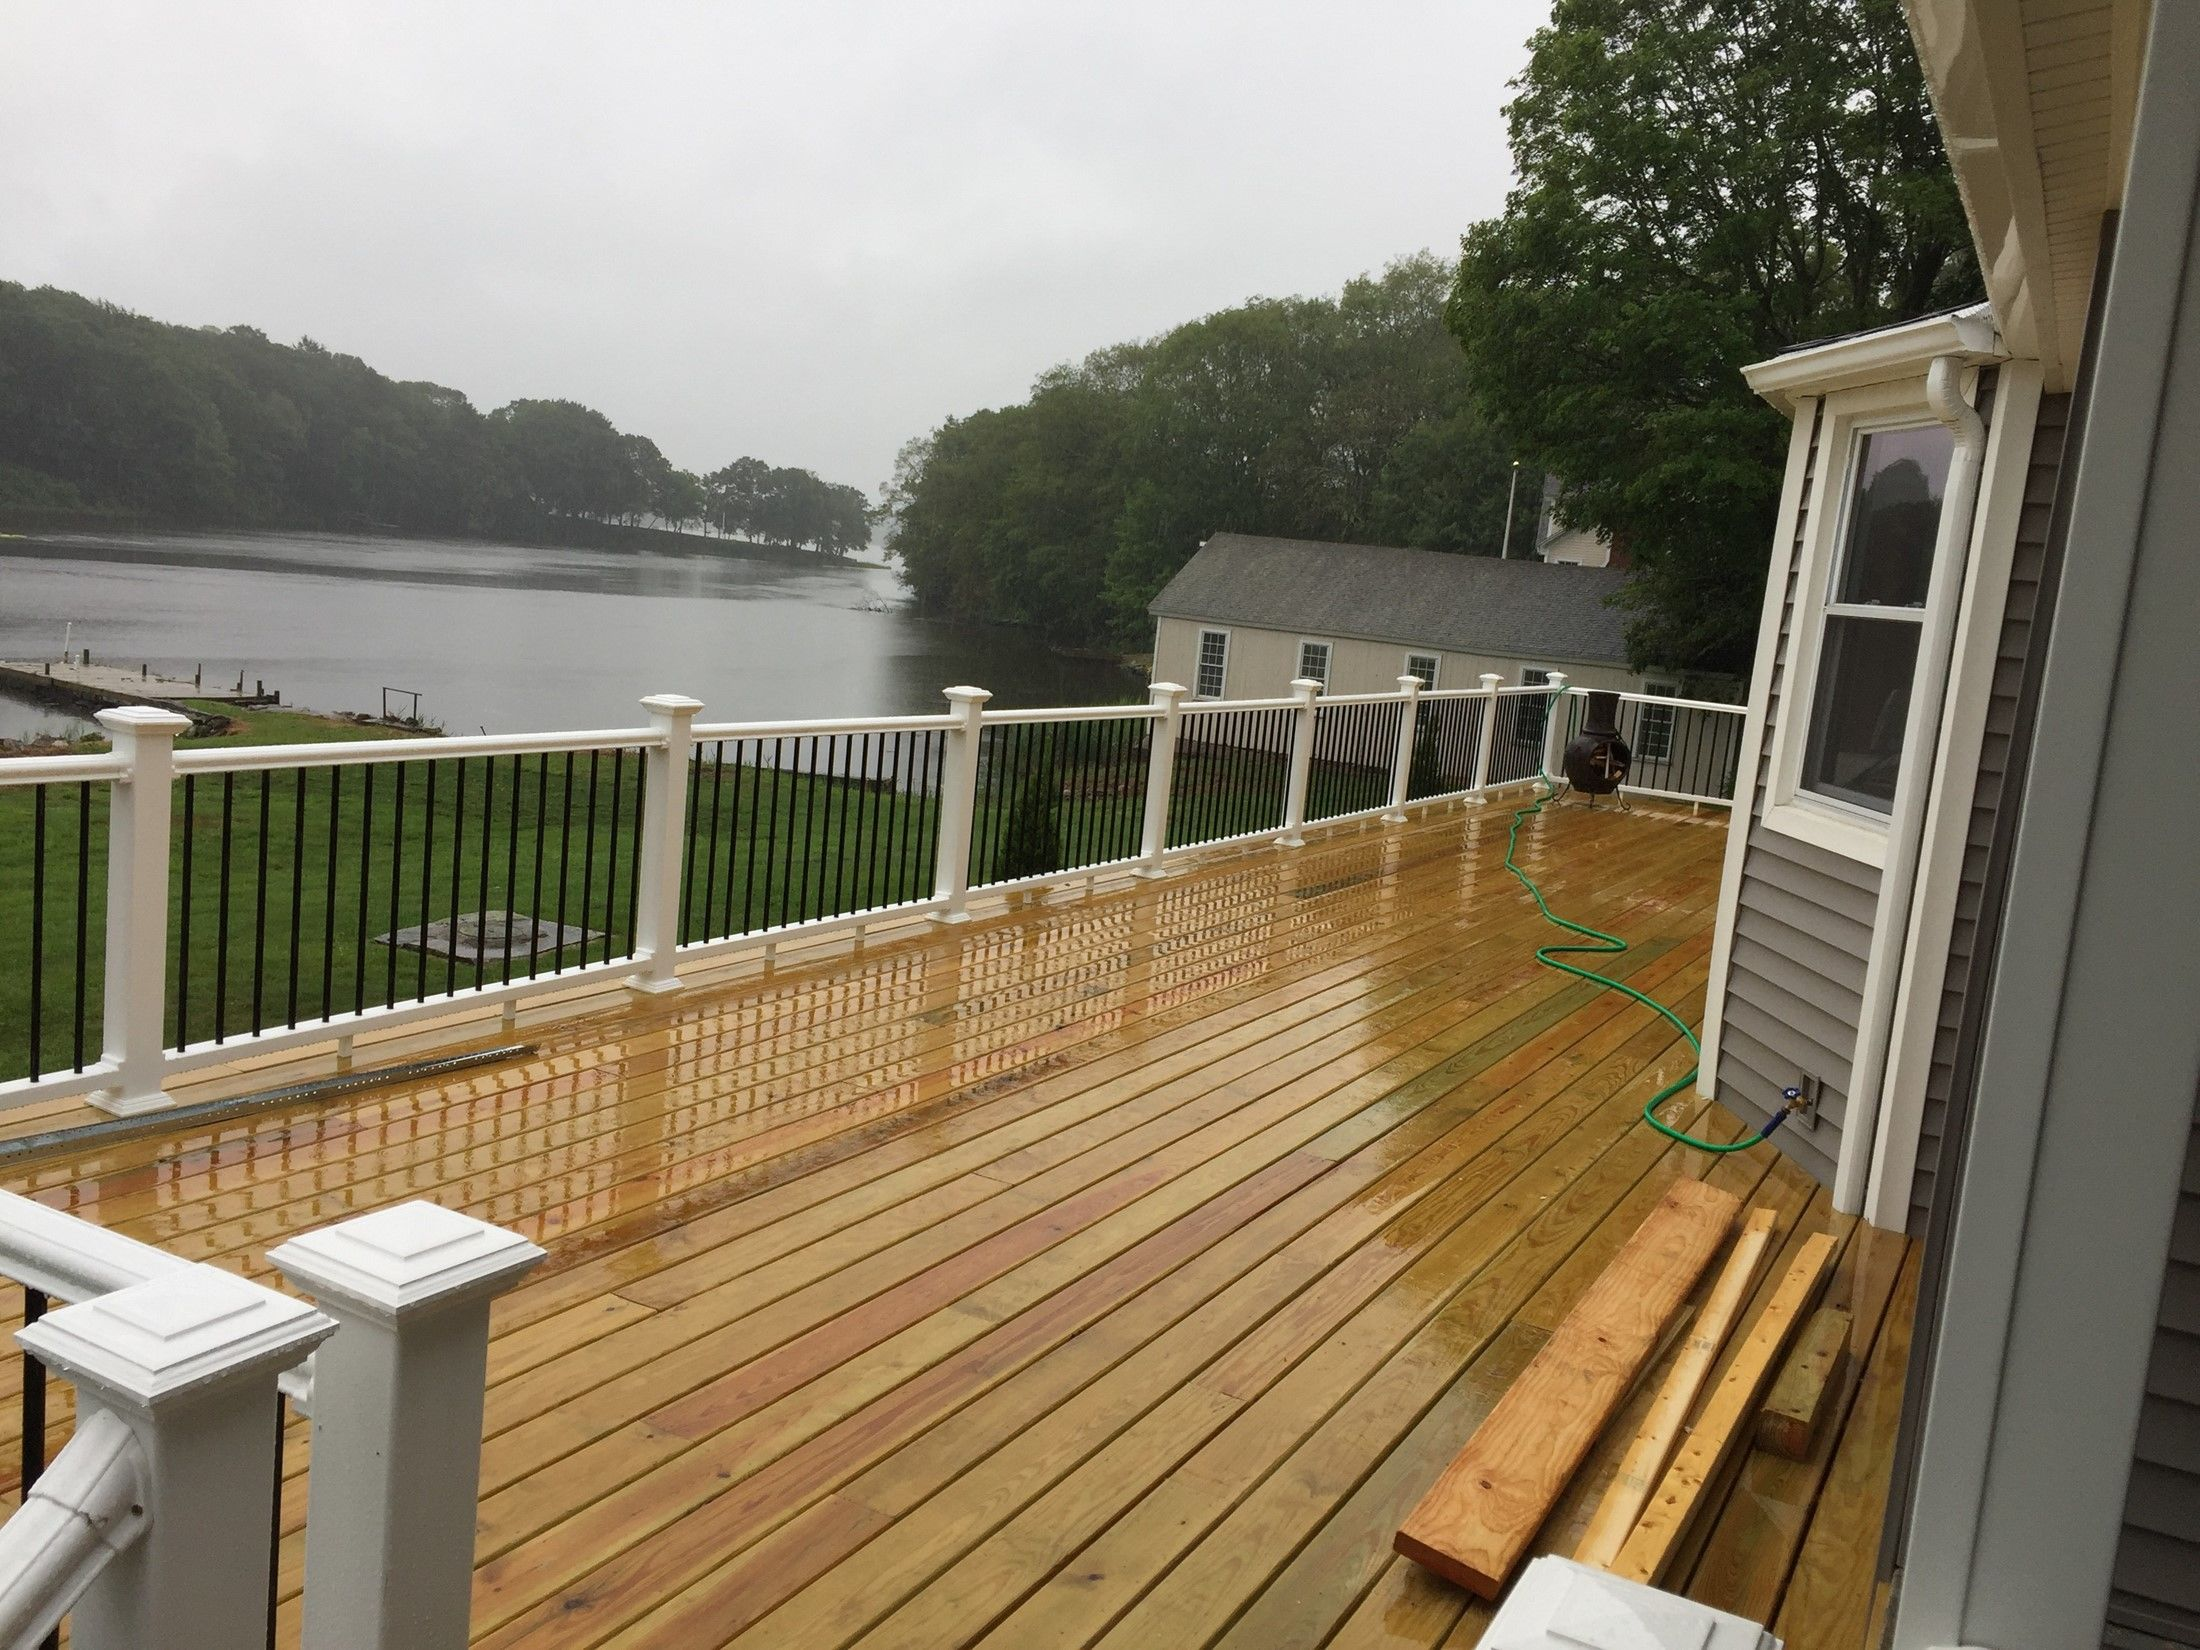 P/T DECK - Picture 7712